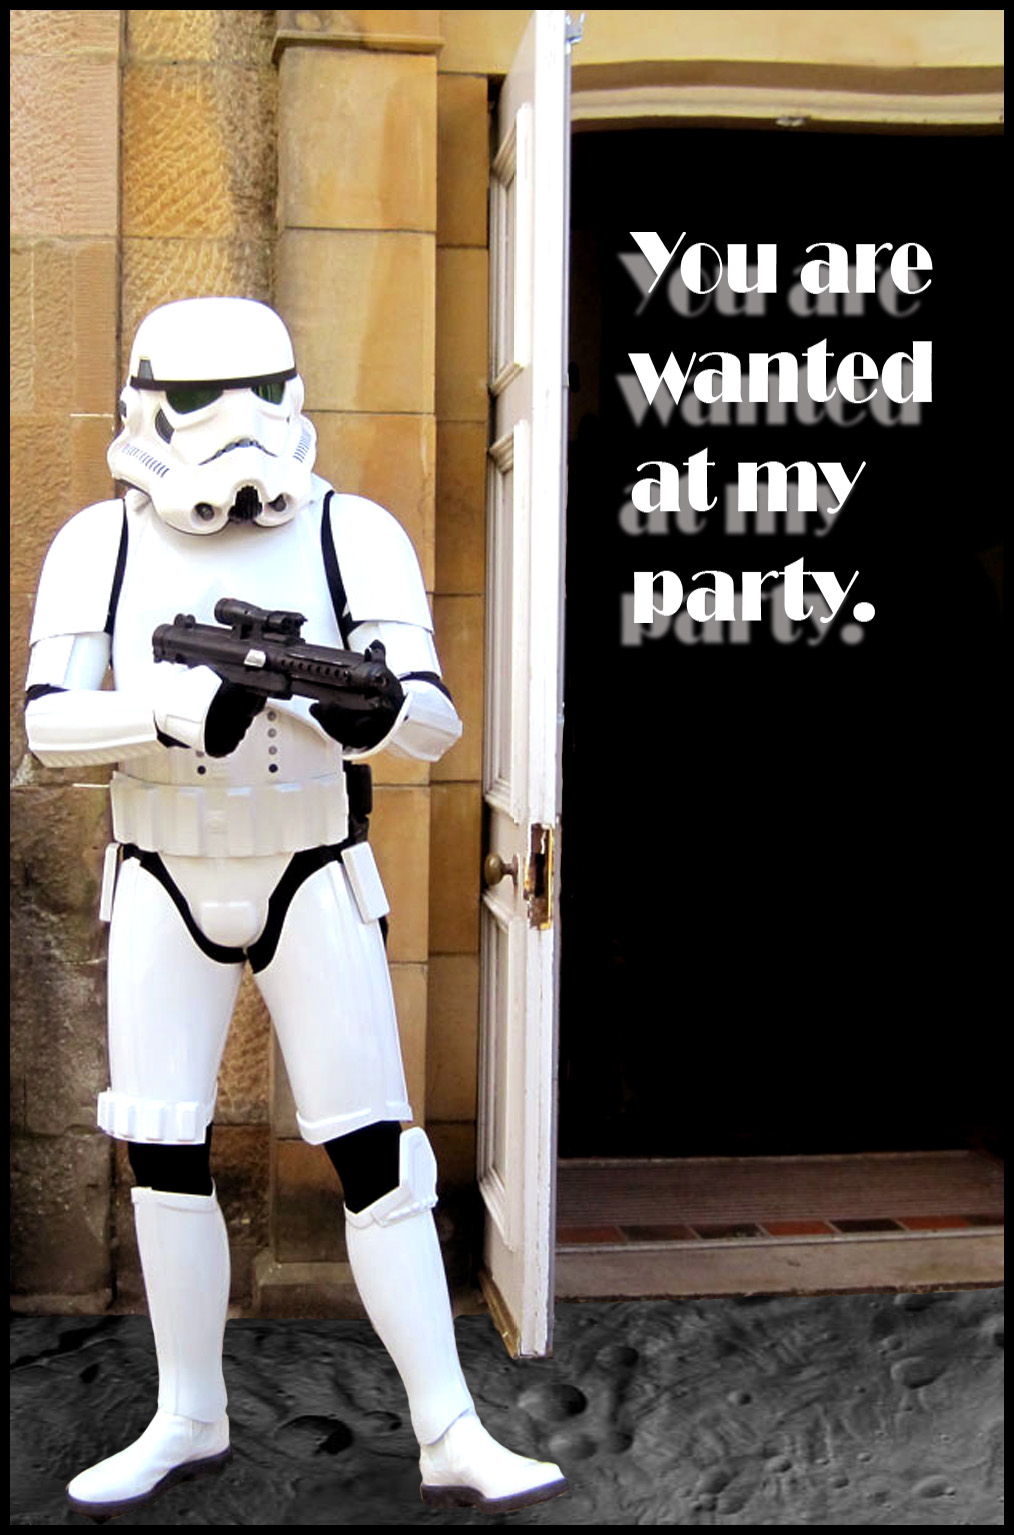 Party invitation with stormtrooper